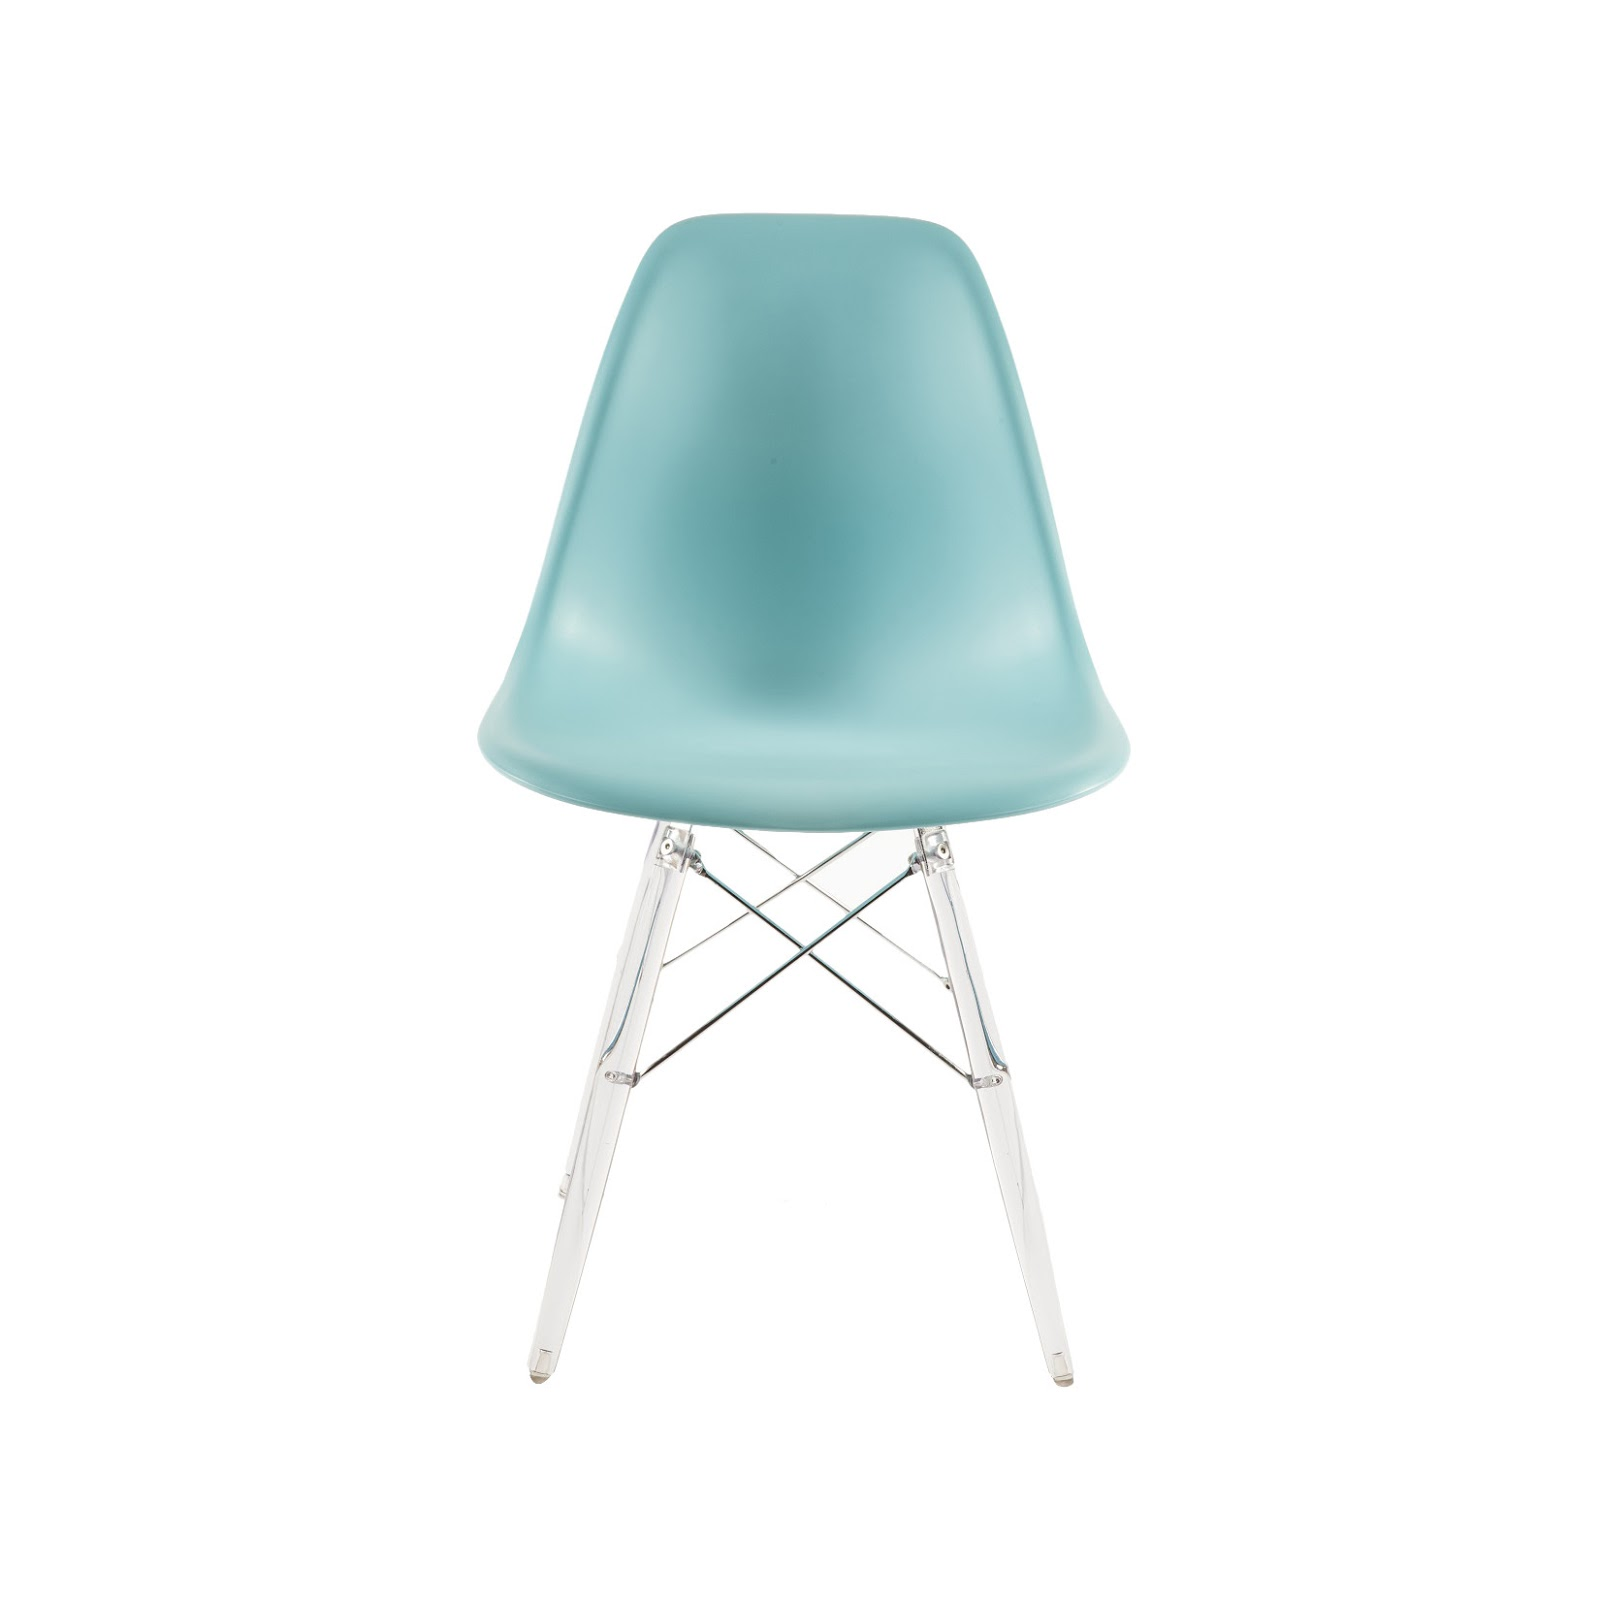 Astonishing Mid Century Modern Inspired Finds From Wayfair Dans Le Caraccident5 Cool Chair Designs And Ideas Caraccident5Info